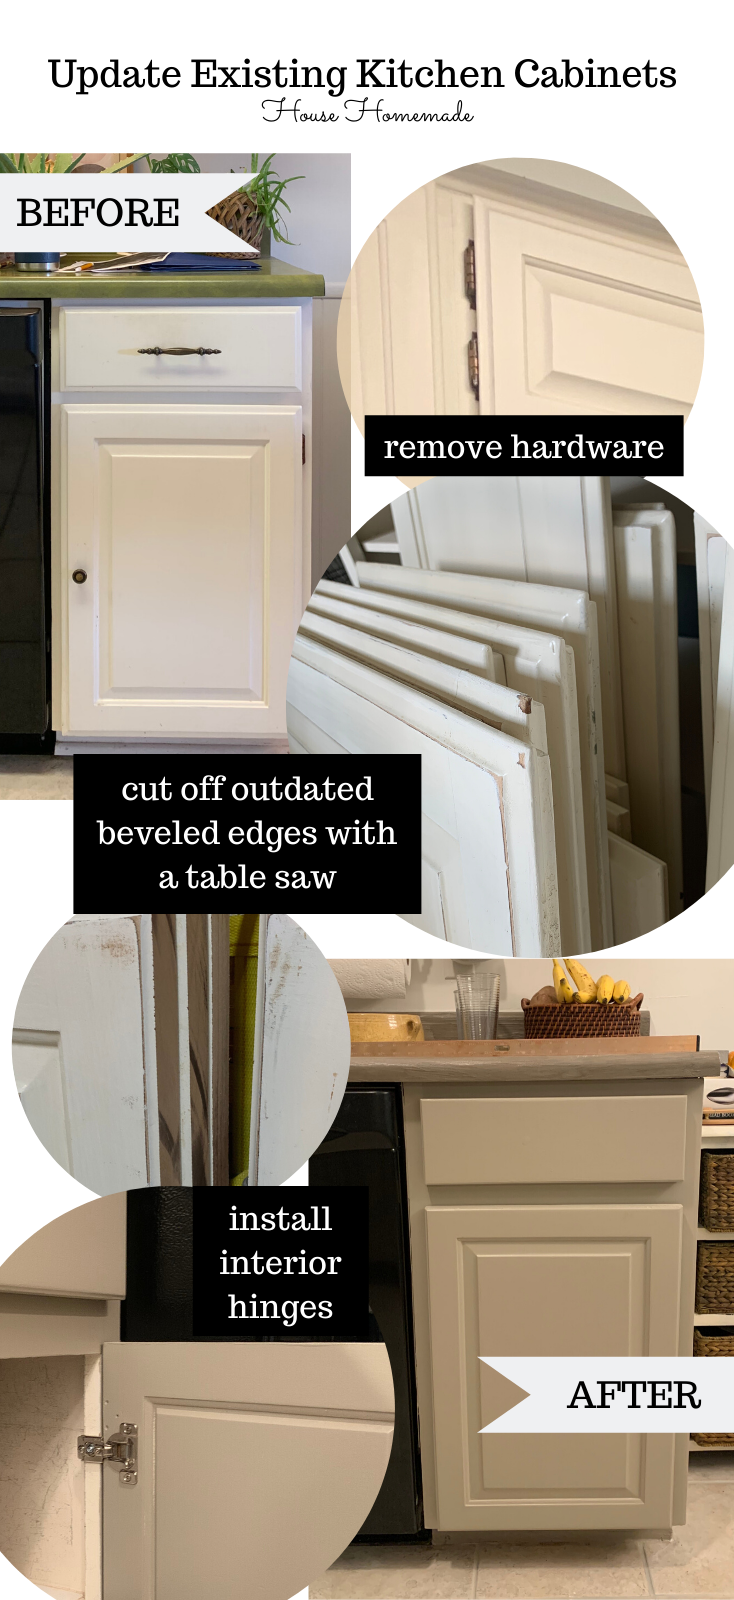 update old outdated cabinet doors to a modern style. Slice off edges of cabinets to update. | House Homemade